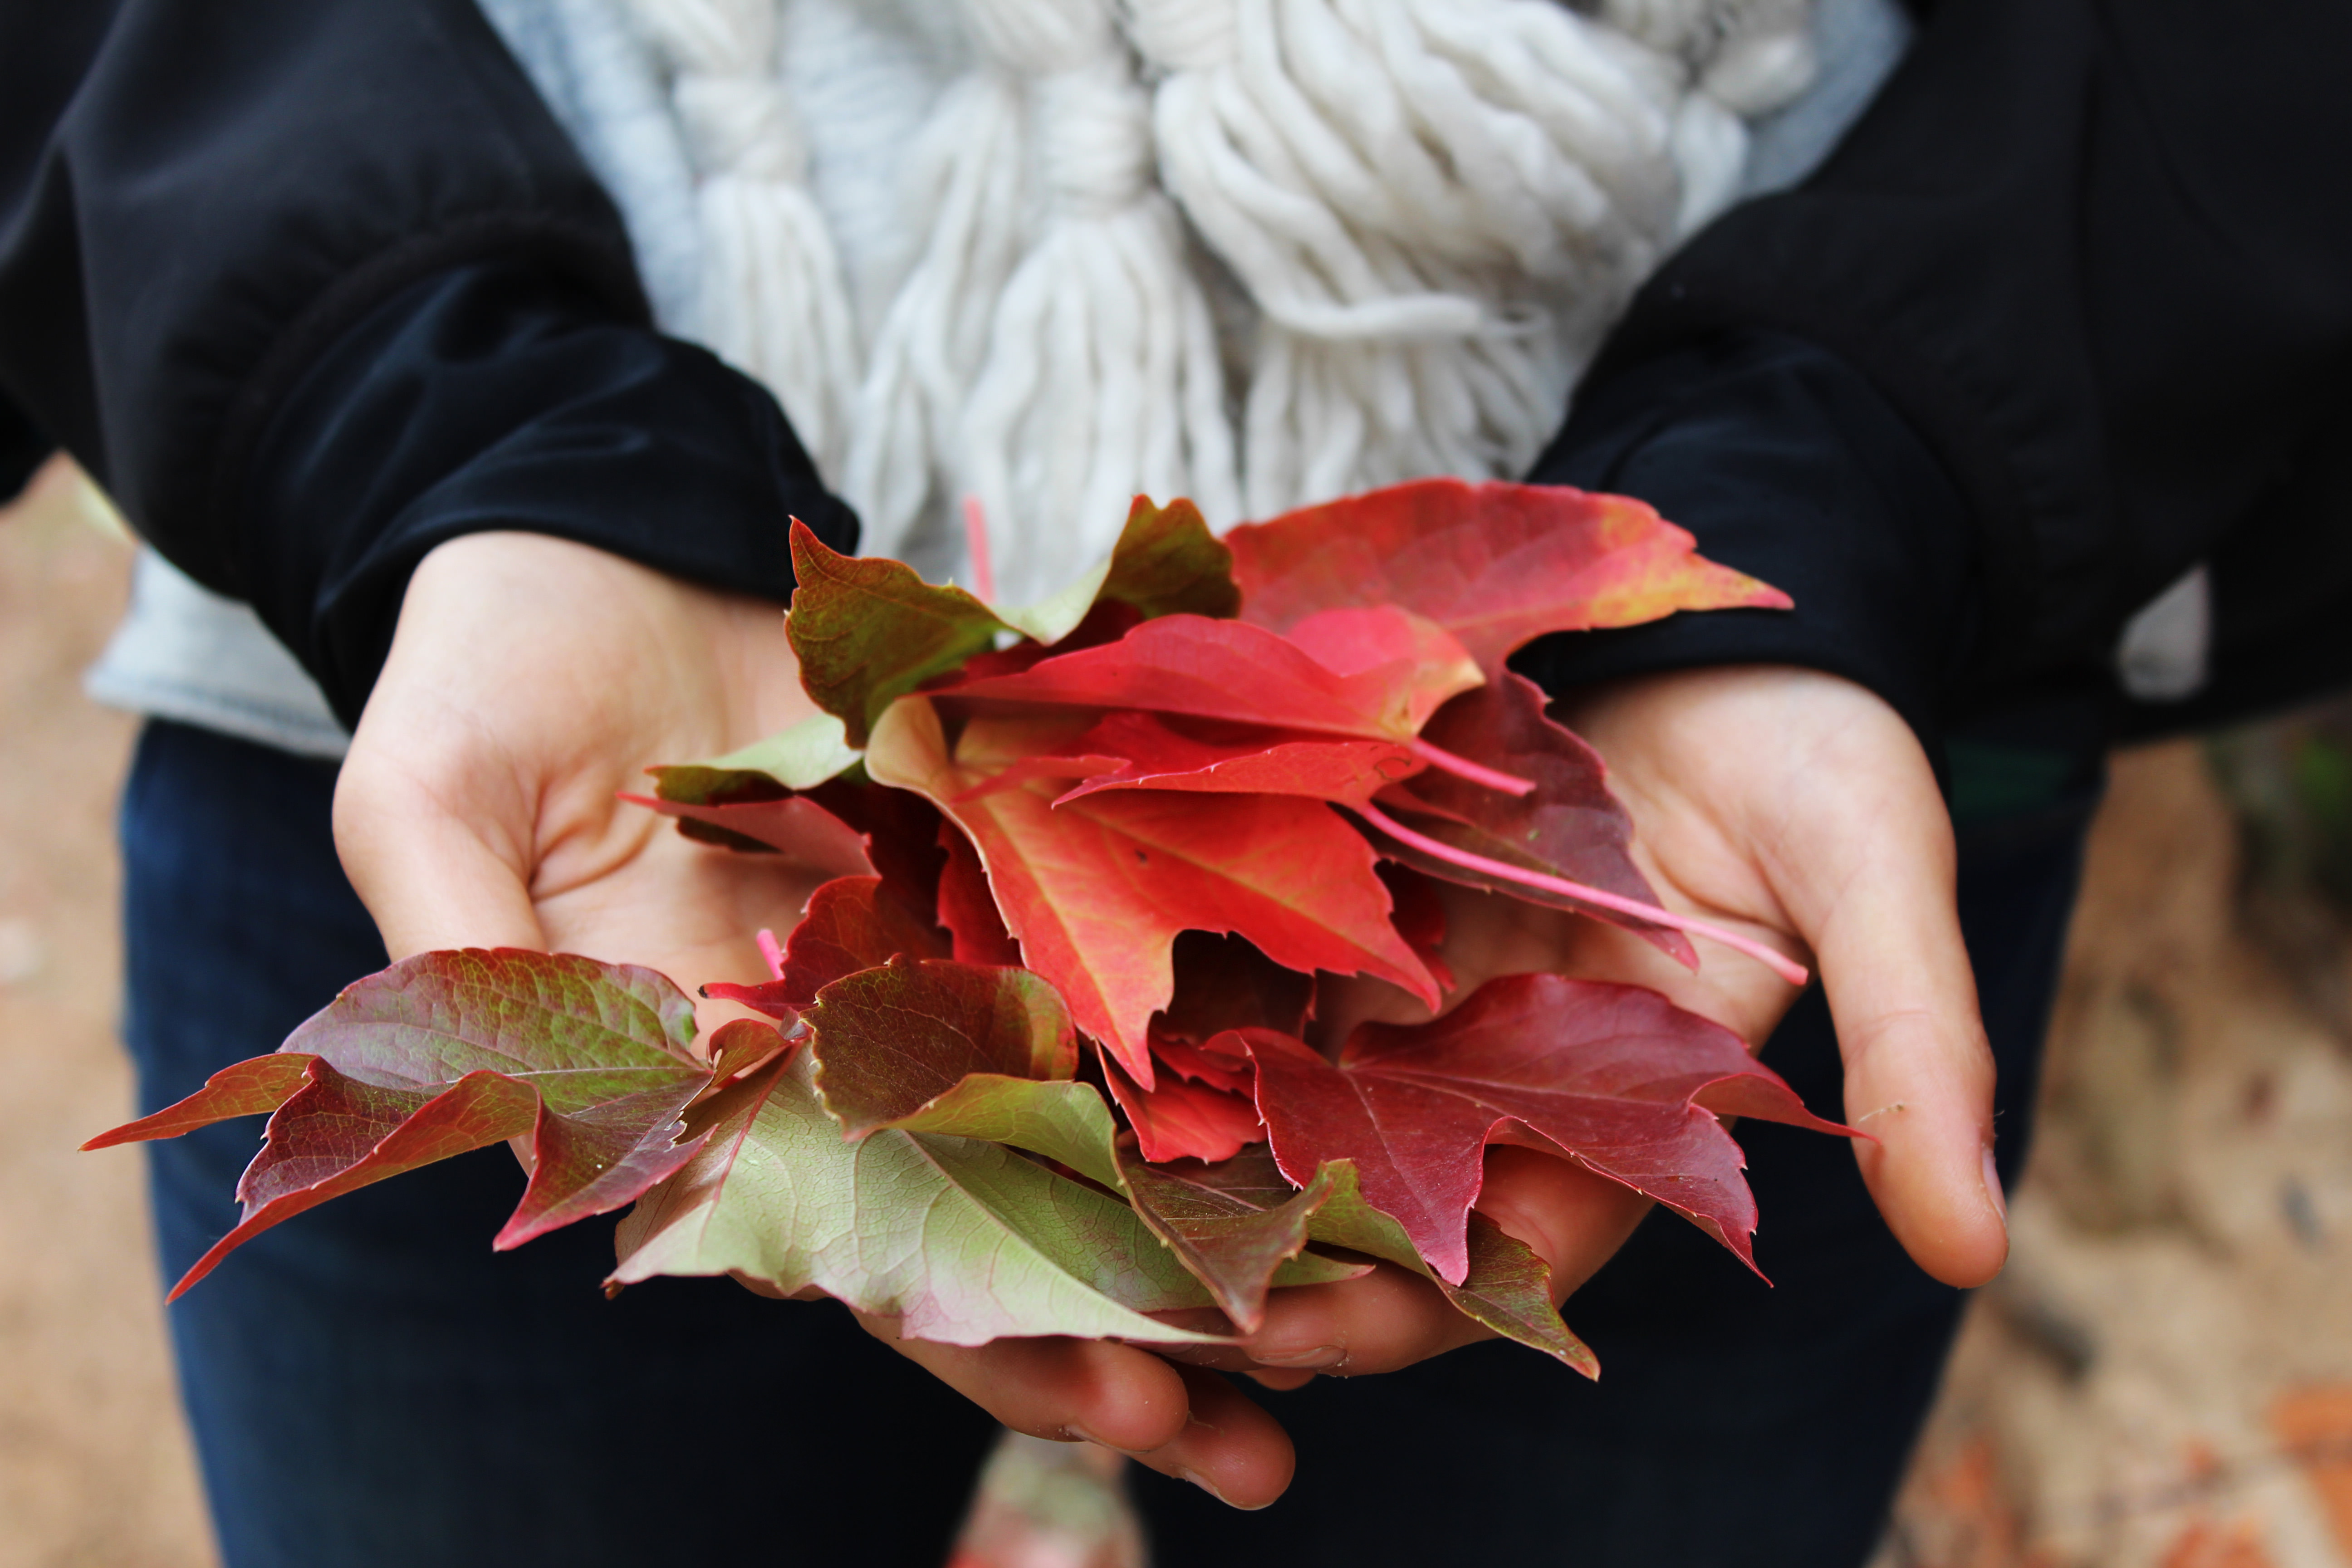 leaves_in_hand